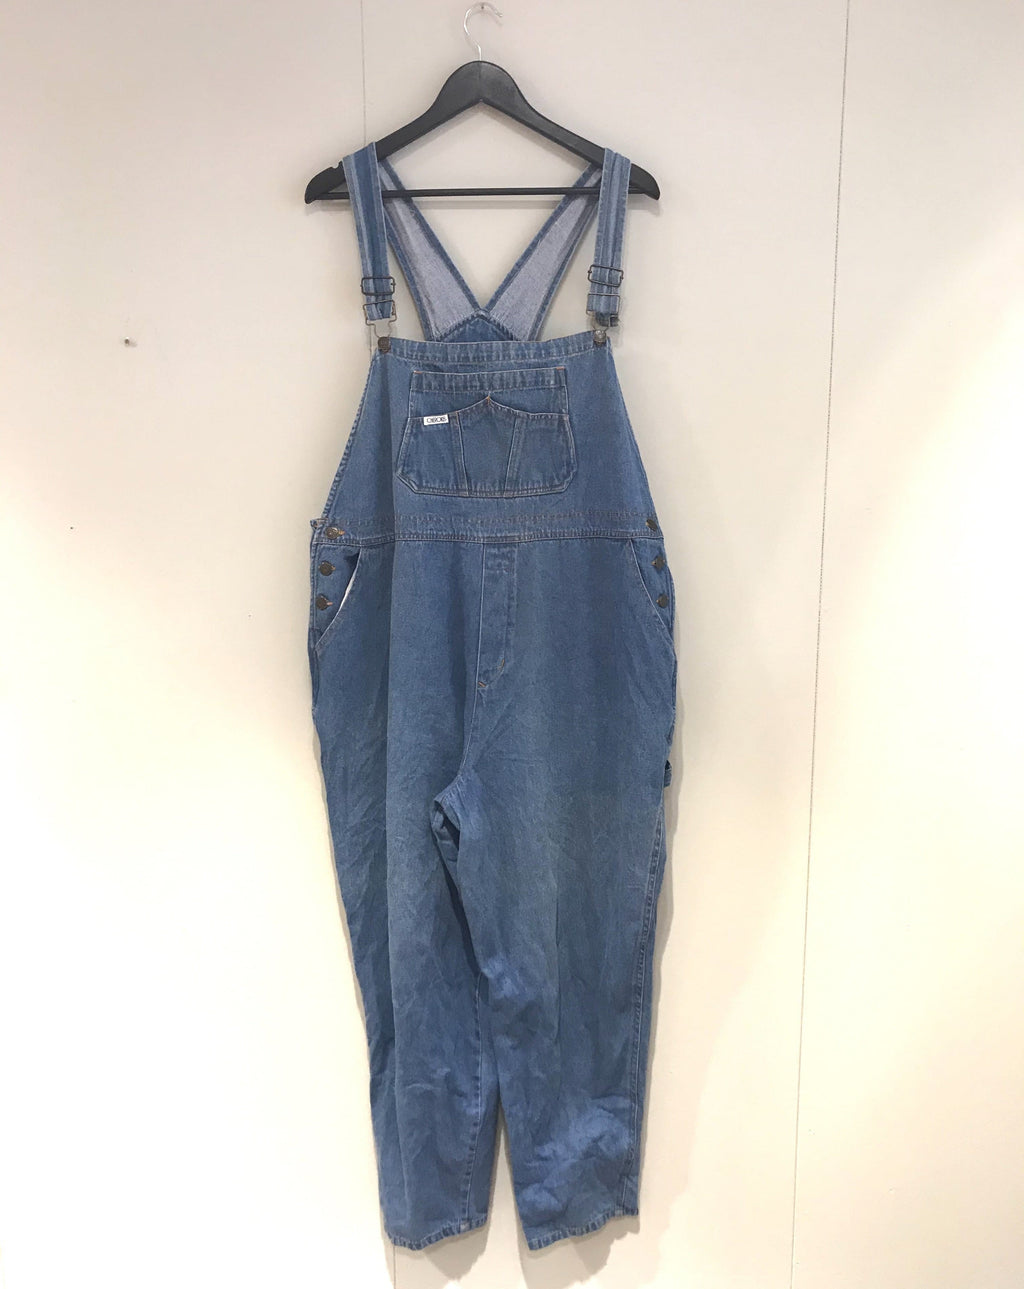 Overalls, størrelse XXL Second Chance Second chance